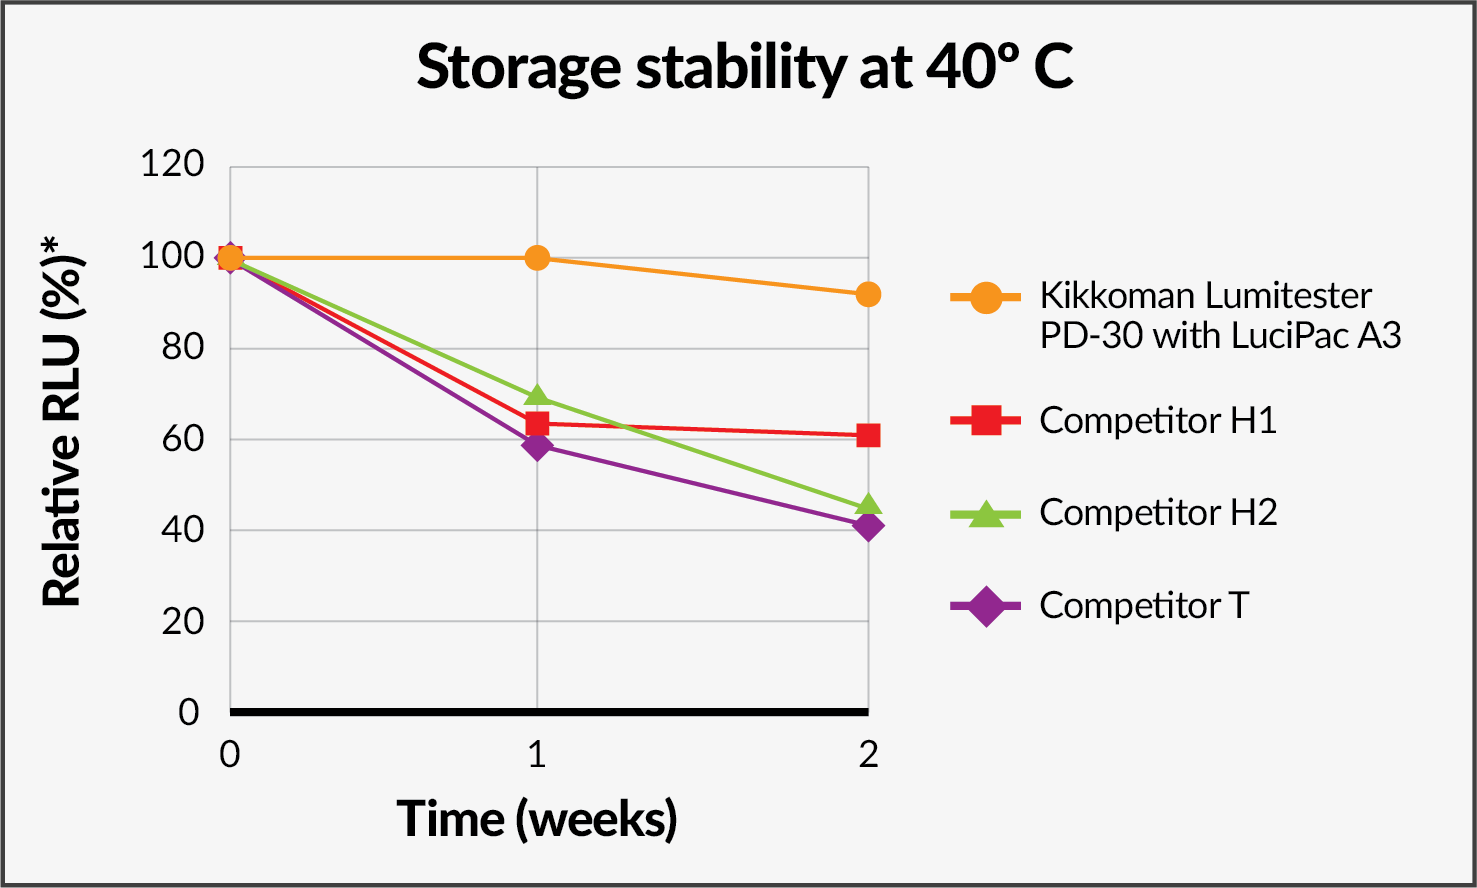 The RLU of LuciPac A3 was decreased only 8% after extreme storage at 40ºC for 2 weeks.